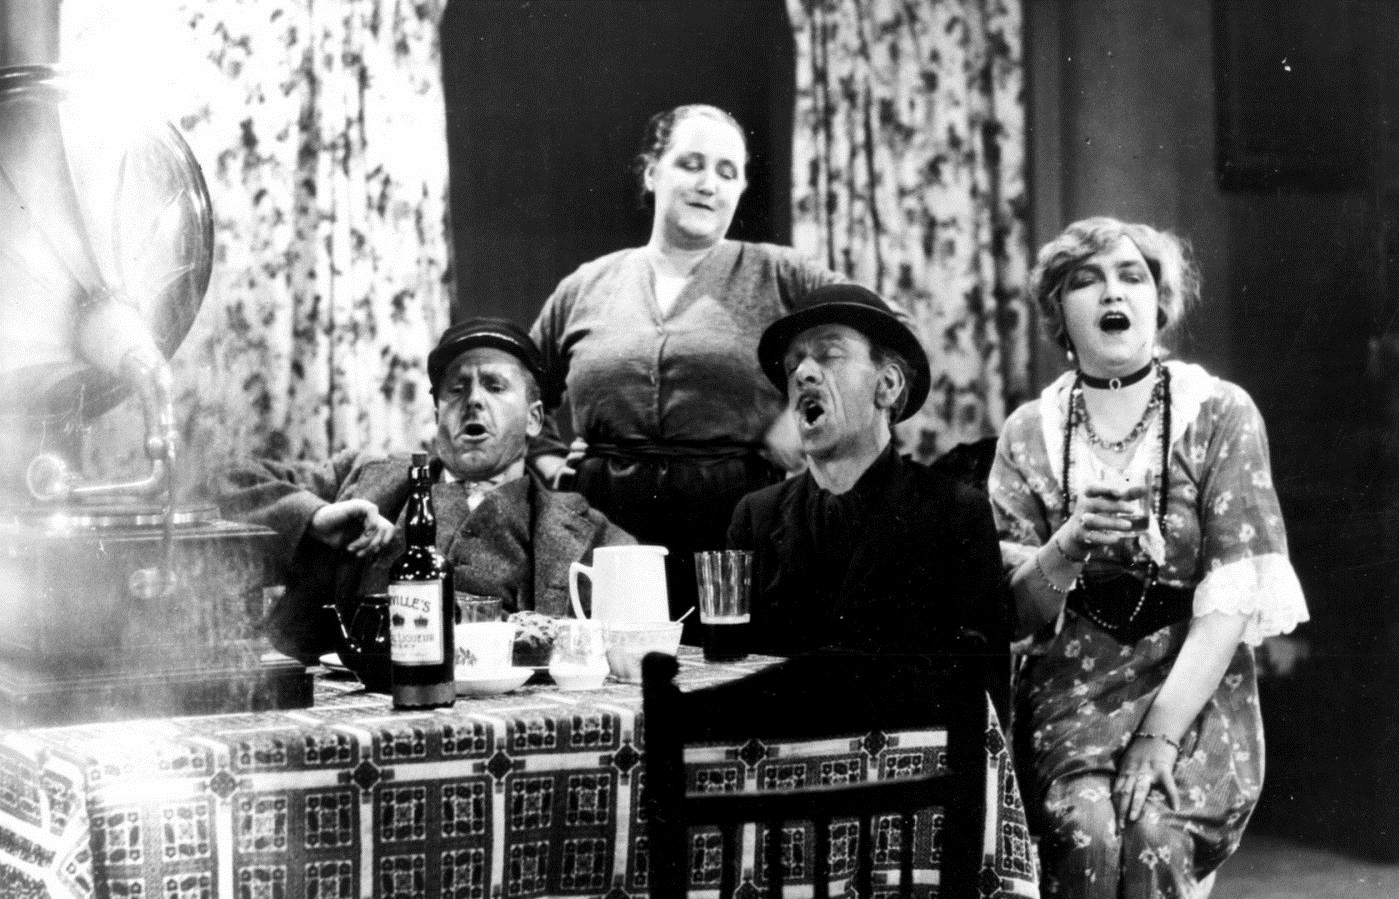 L-R: Edward Chapman, Sara Allgood, Sidney Morgan and Maire O'Neal in Juno and the Paycock (1930, dir. Alfred Hitchcock)